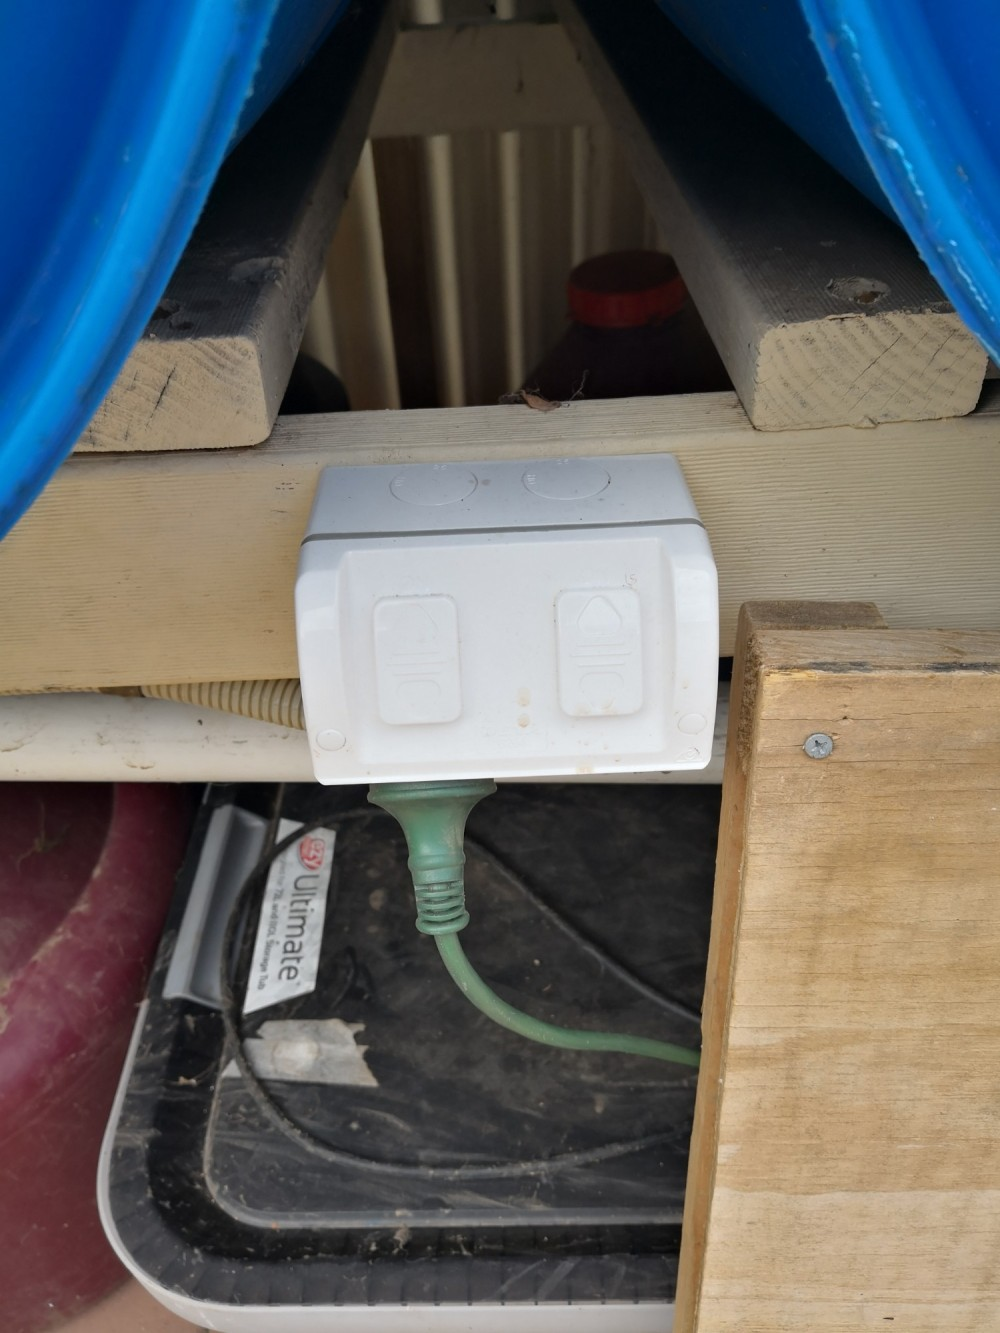 Weatherproof power sockets